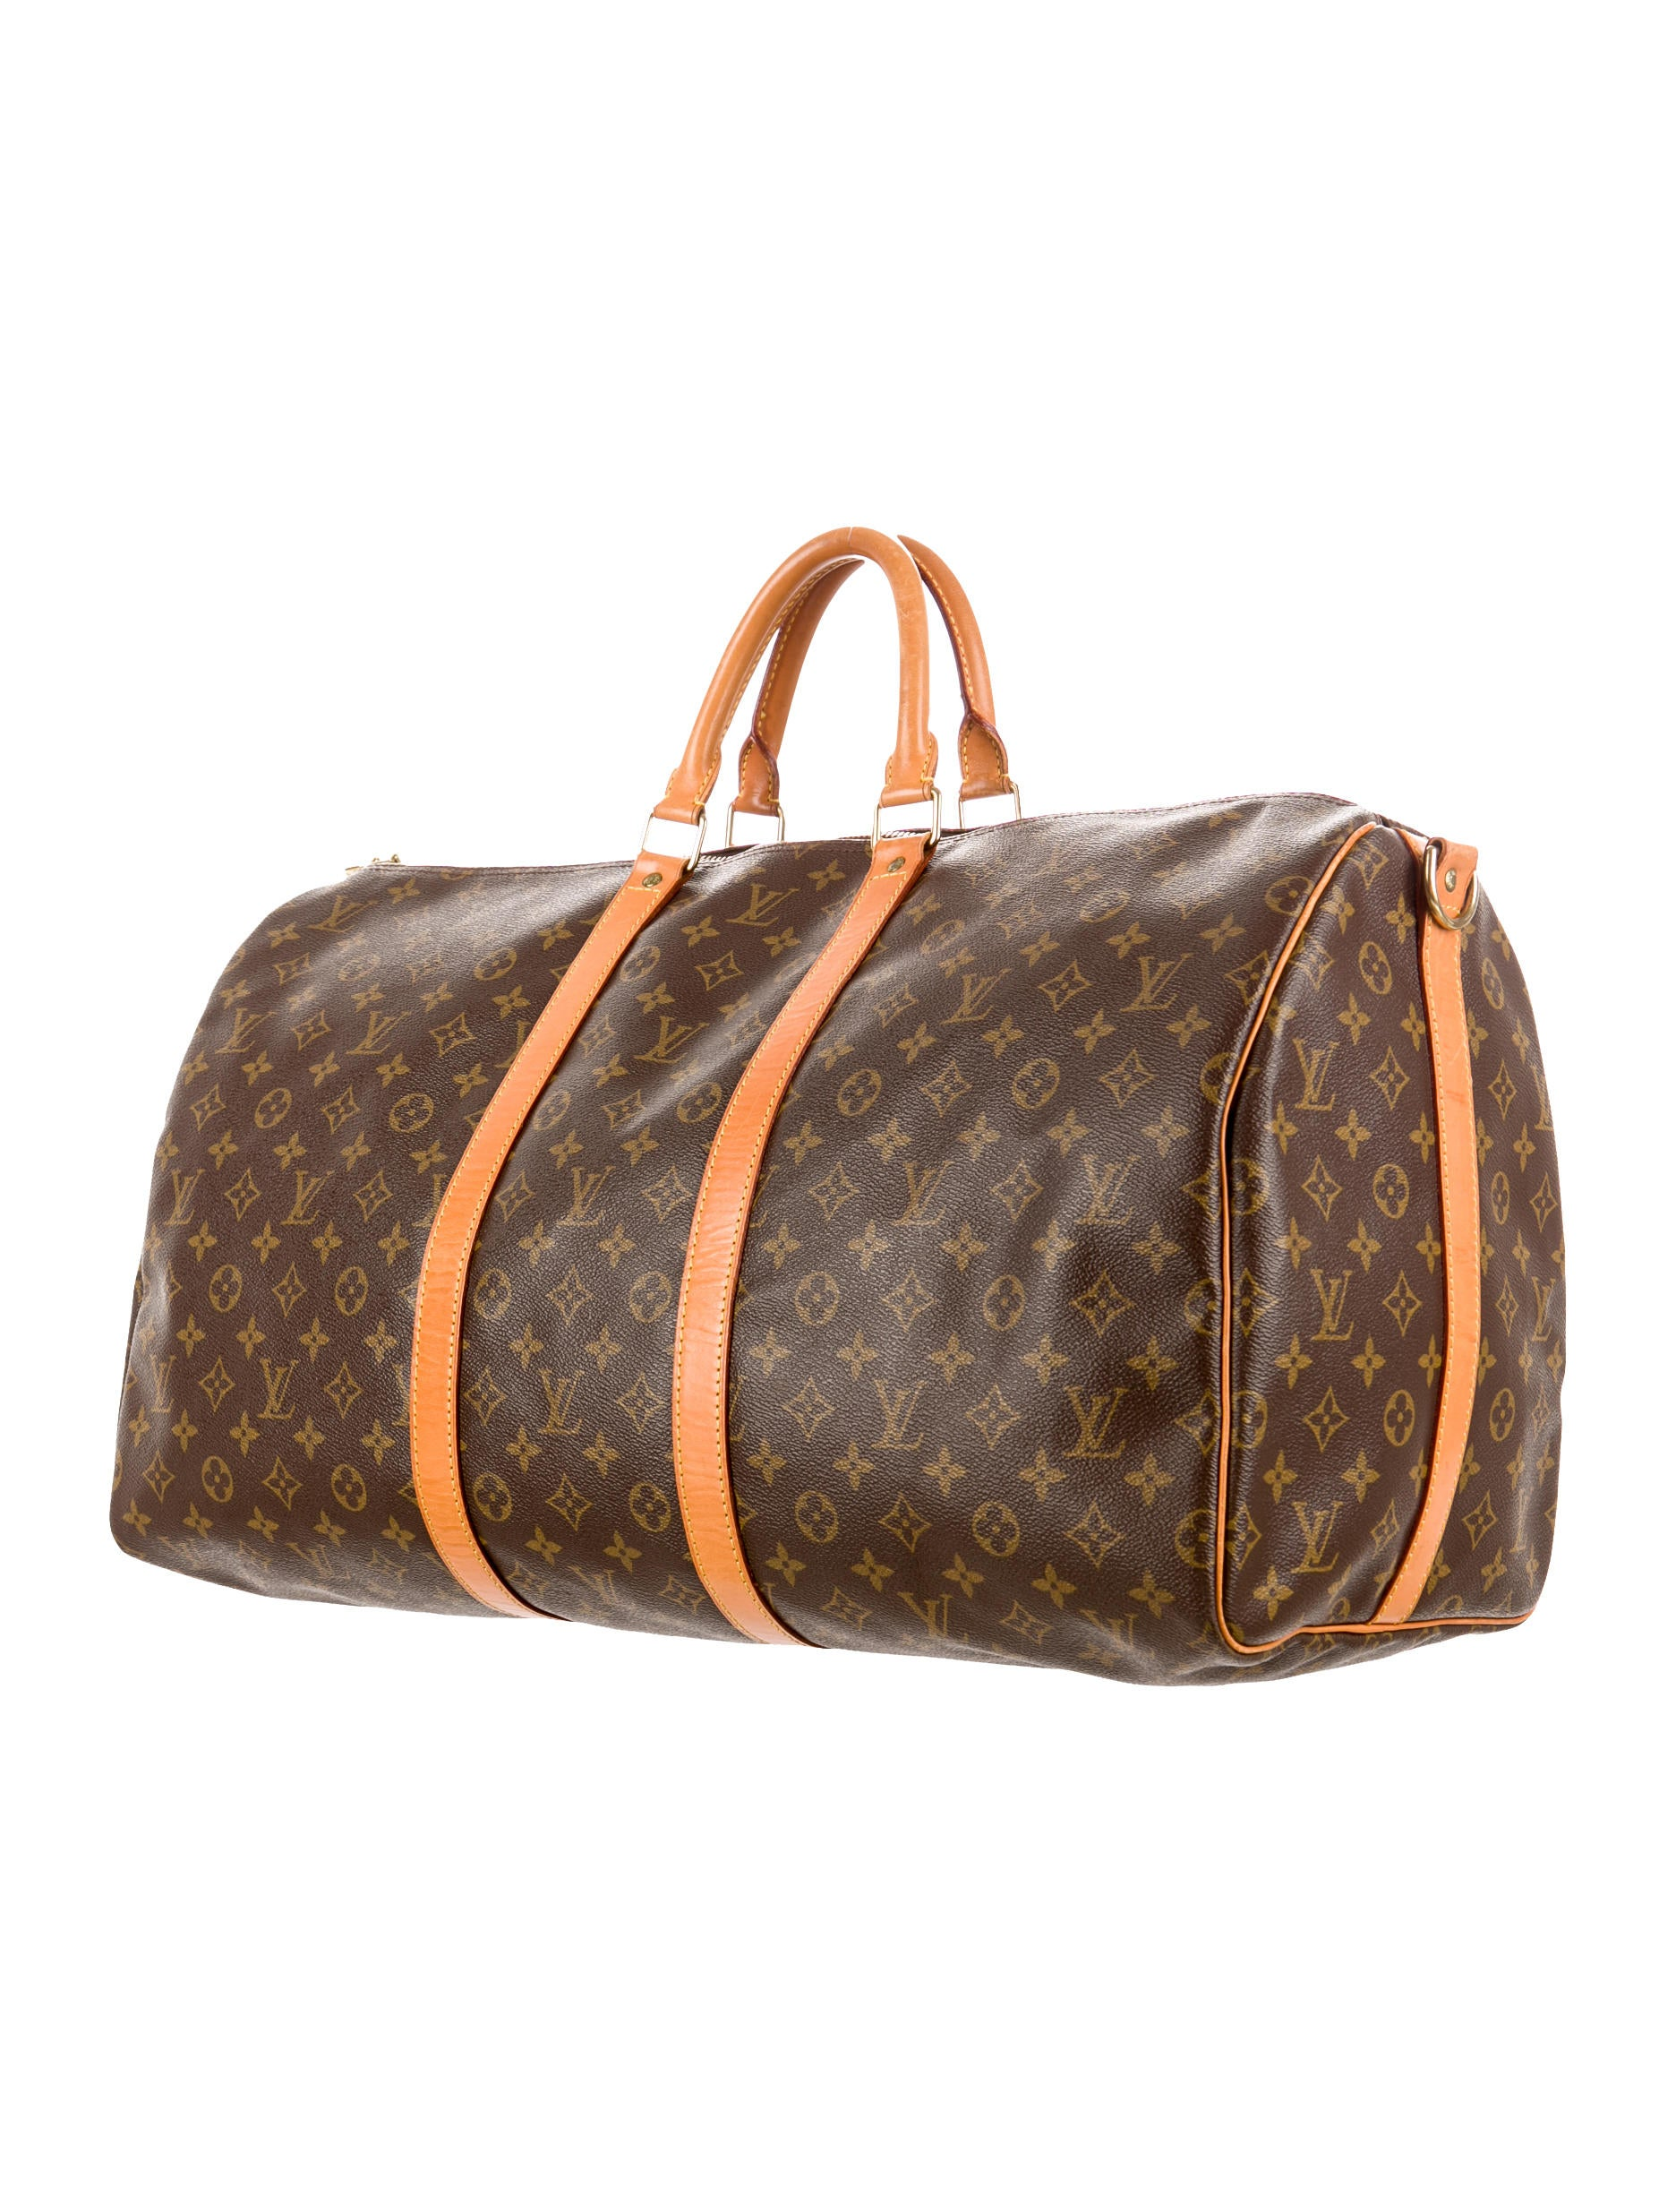 louis vuitton keepall bandouliere 55 luggage lou43215. Black Bedroom Furniture Sets. Home Design Ideas